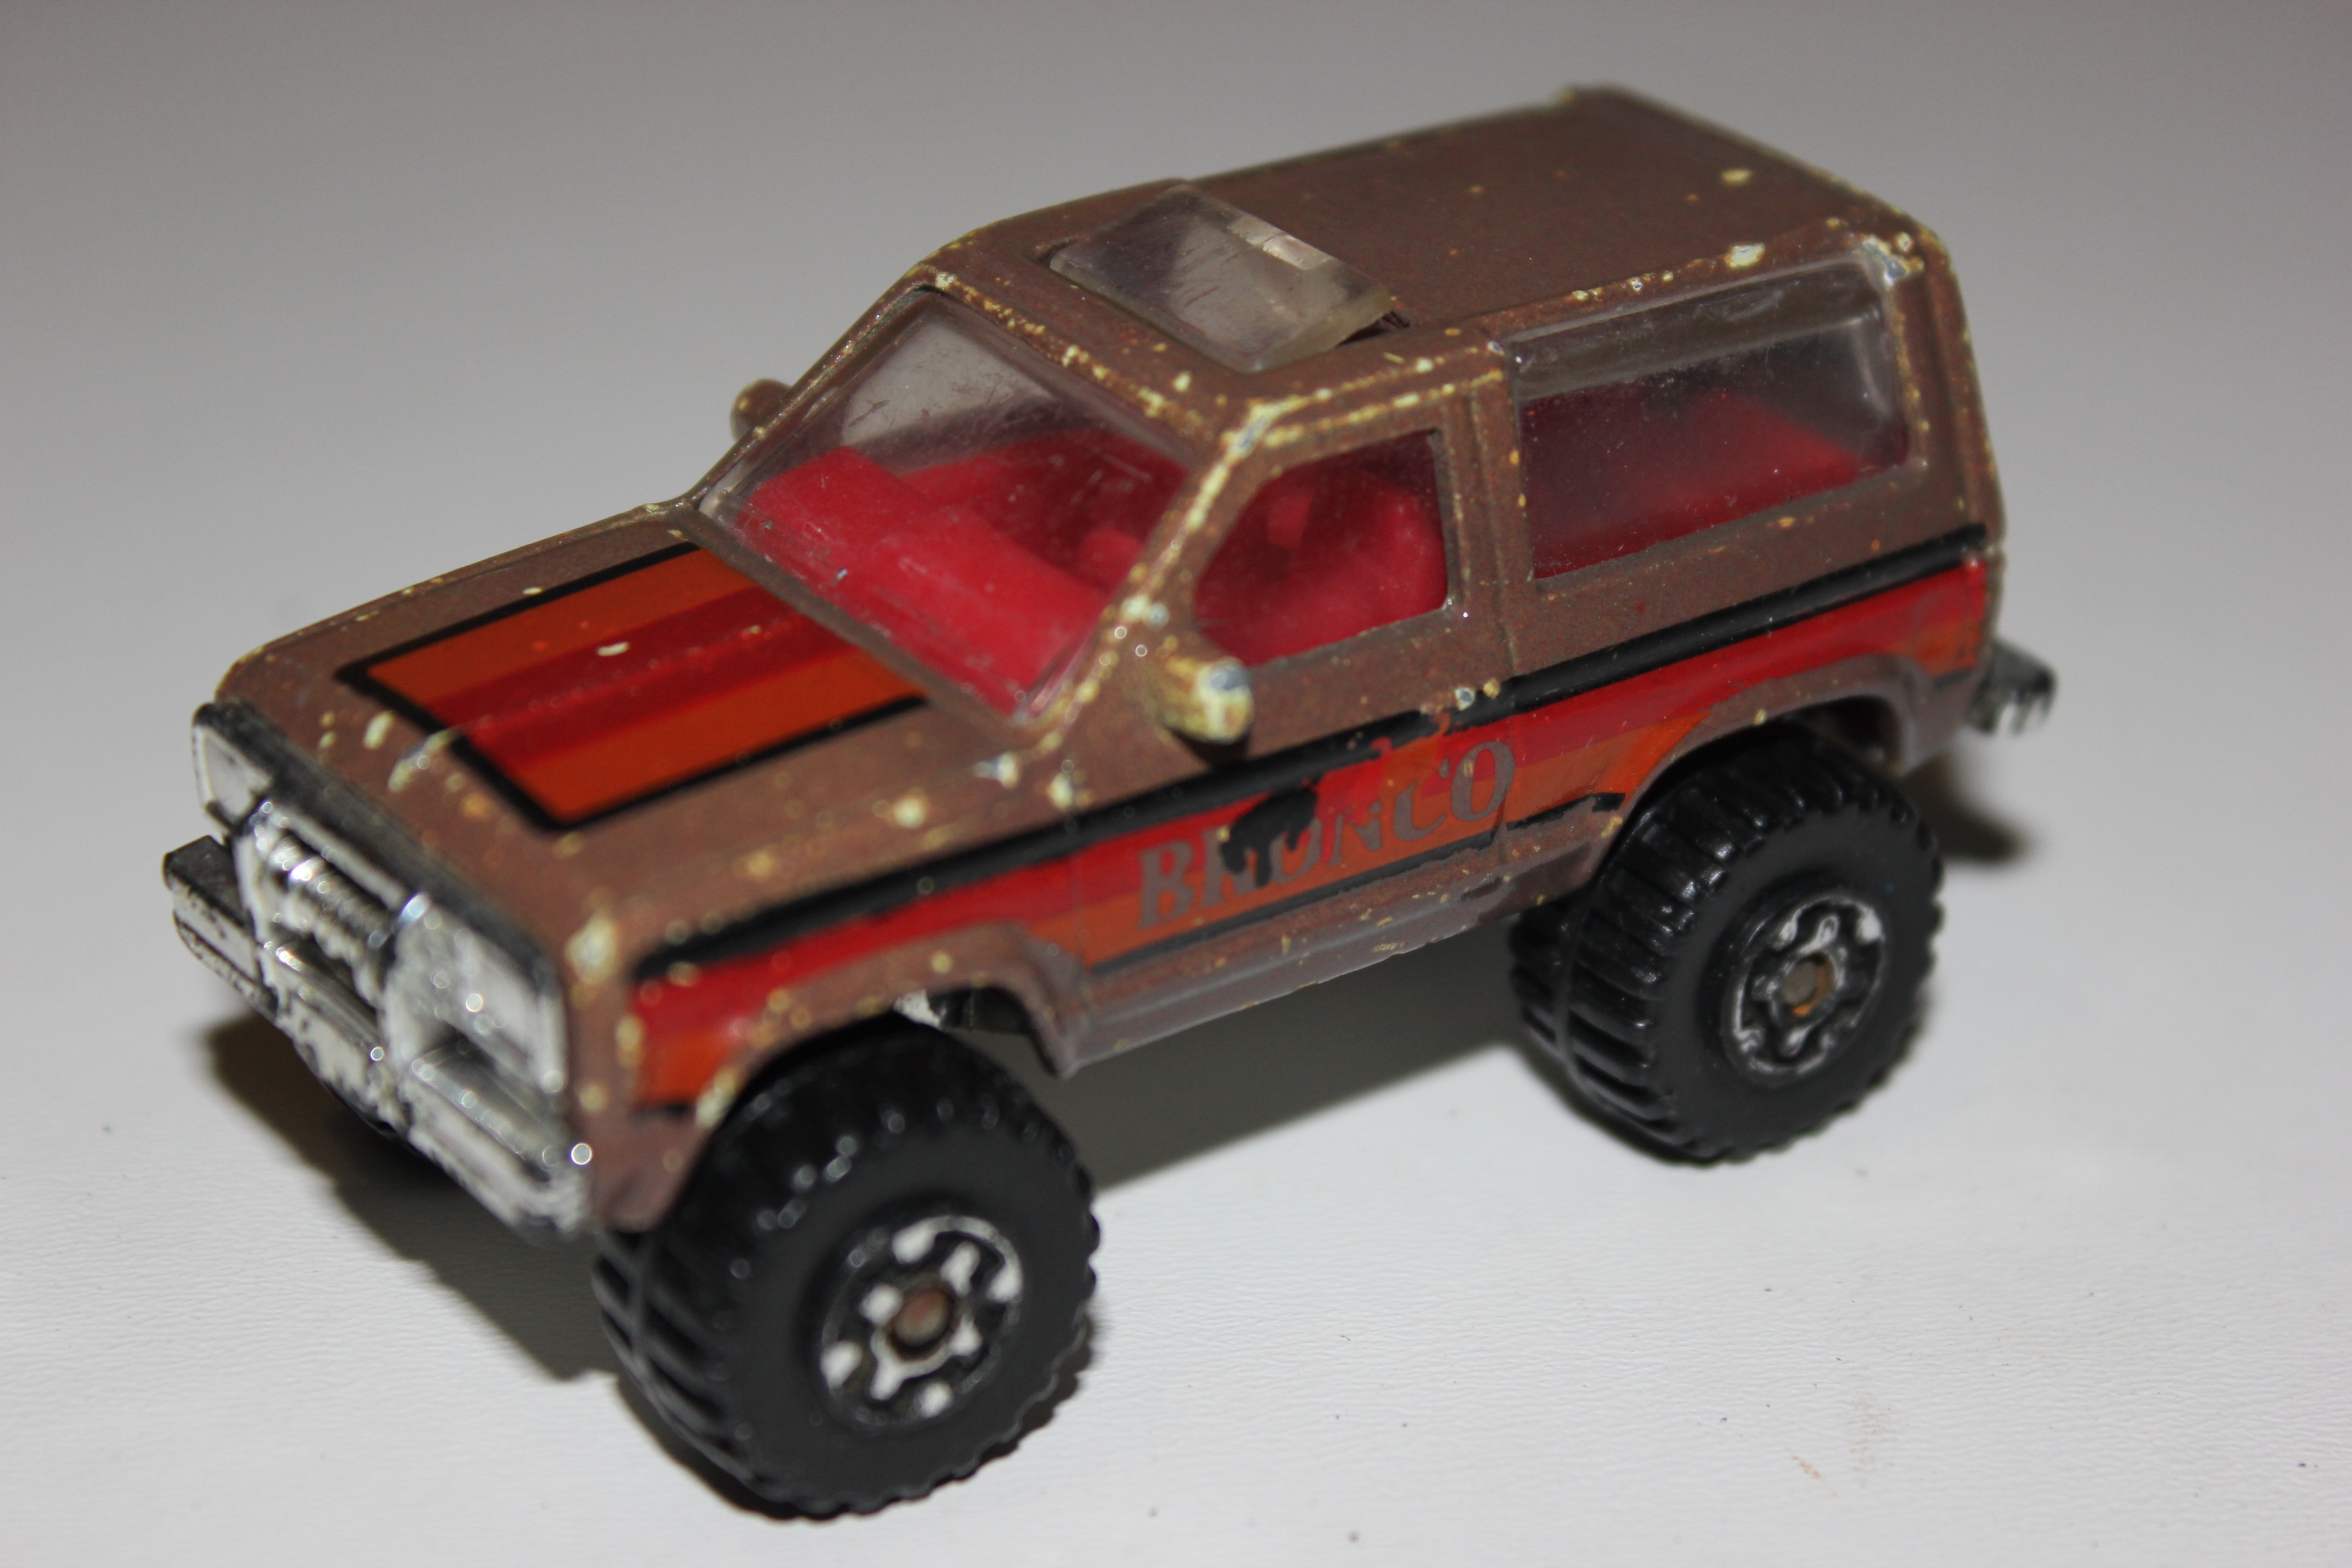 Ford Bronco Ii Matchbox Cars Wiki Fandom Powered By Wikia Macau 031